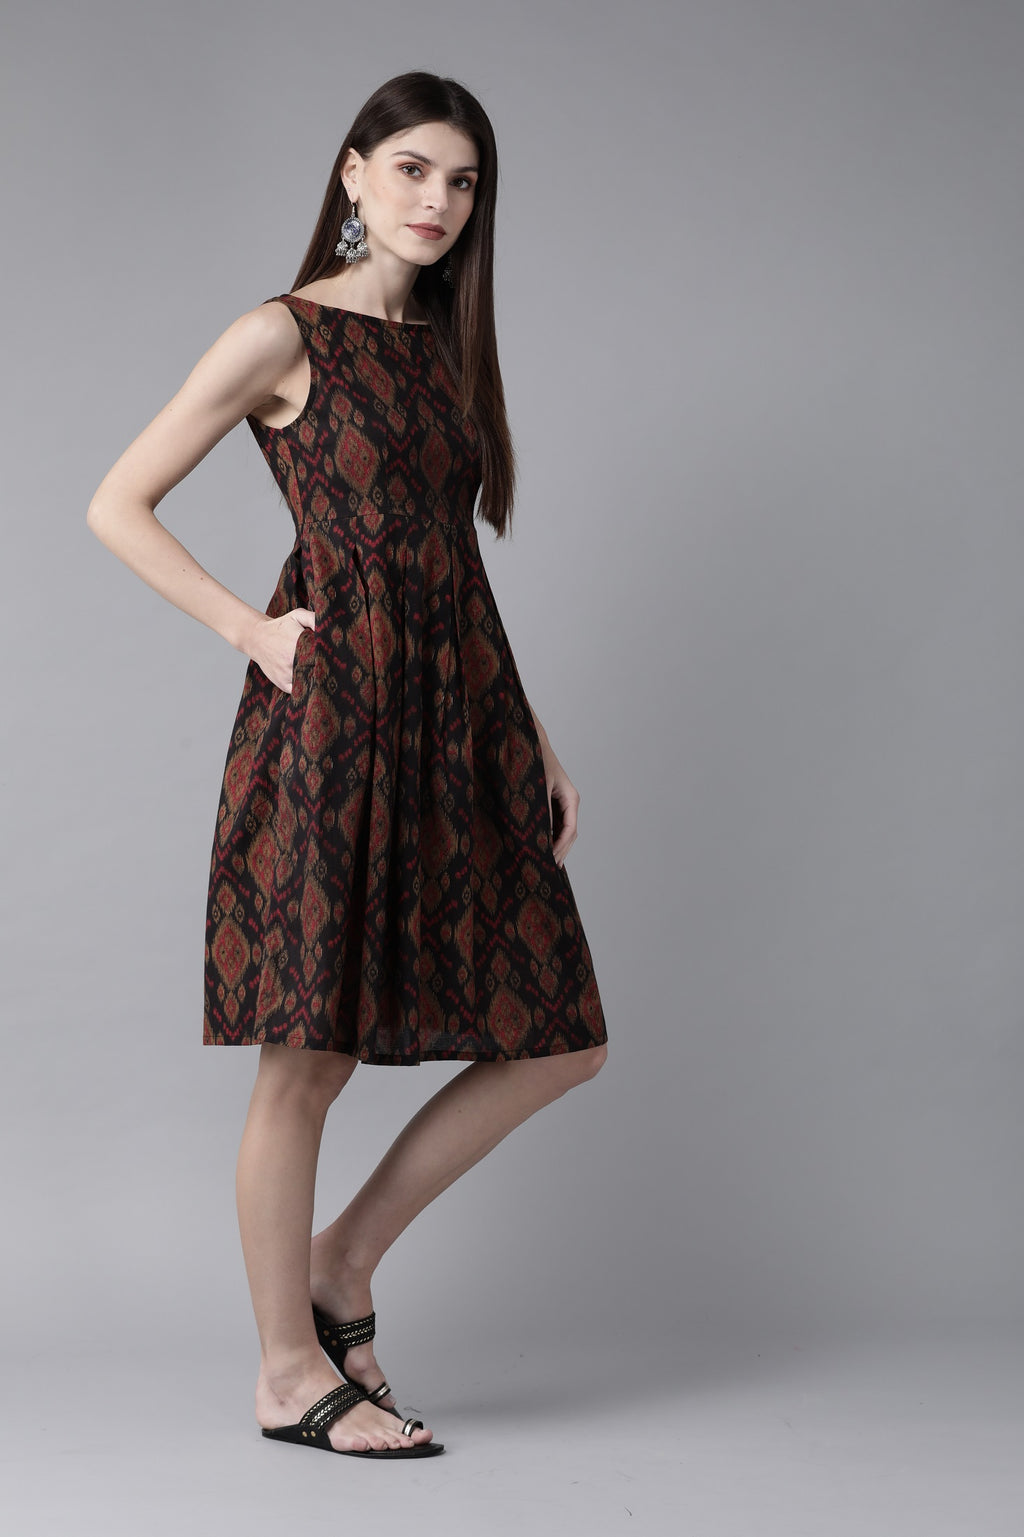 Black & Maroon Printed A-Line Dress ( Fully Stitched) | Znx4ever.com